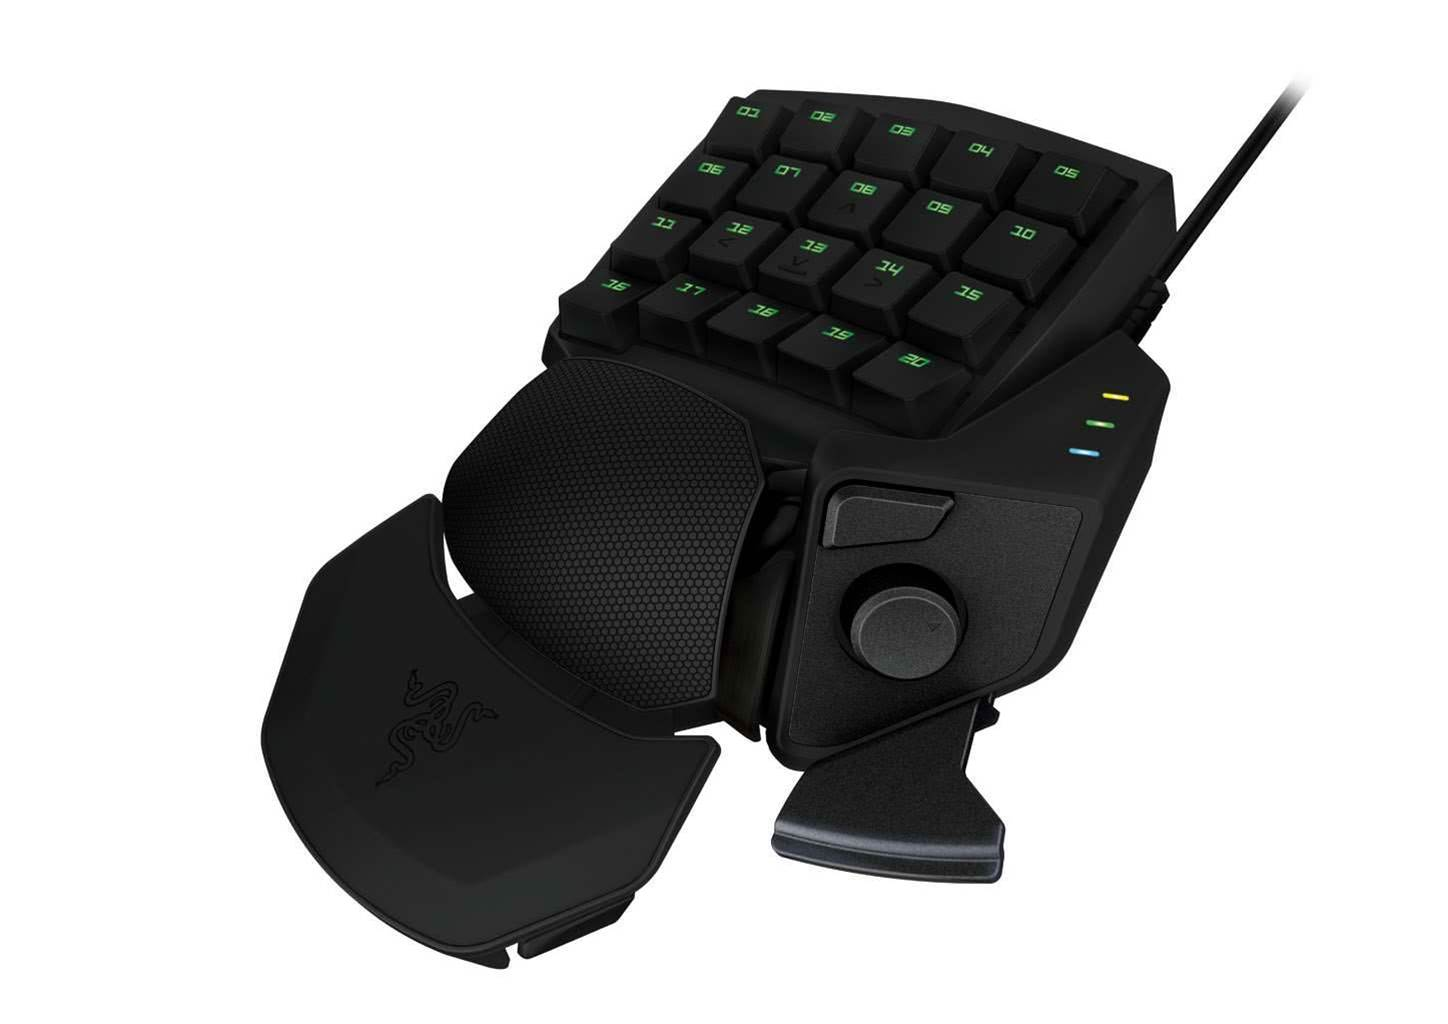 Razer's Edge tablet, and Orbweaver & Sabertooth controllers